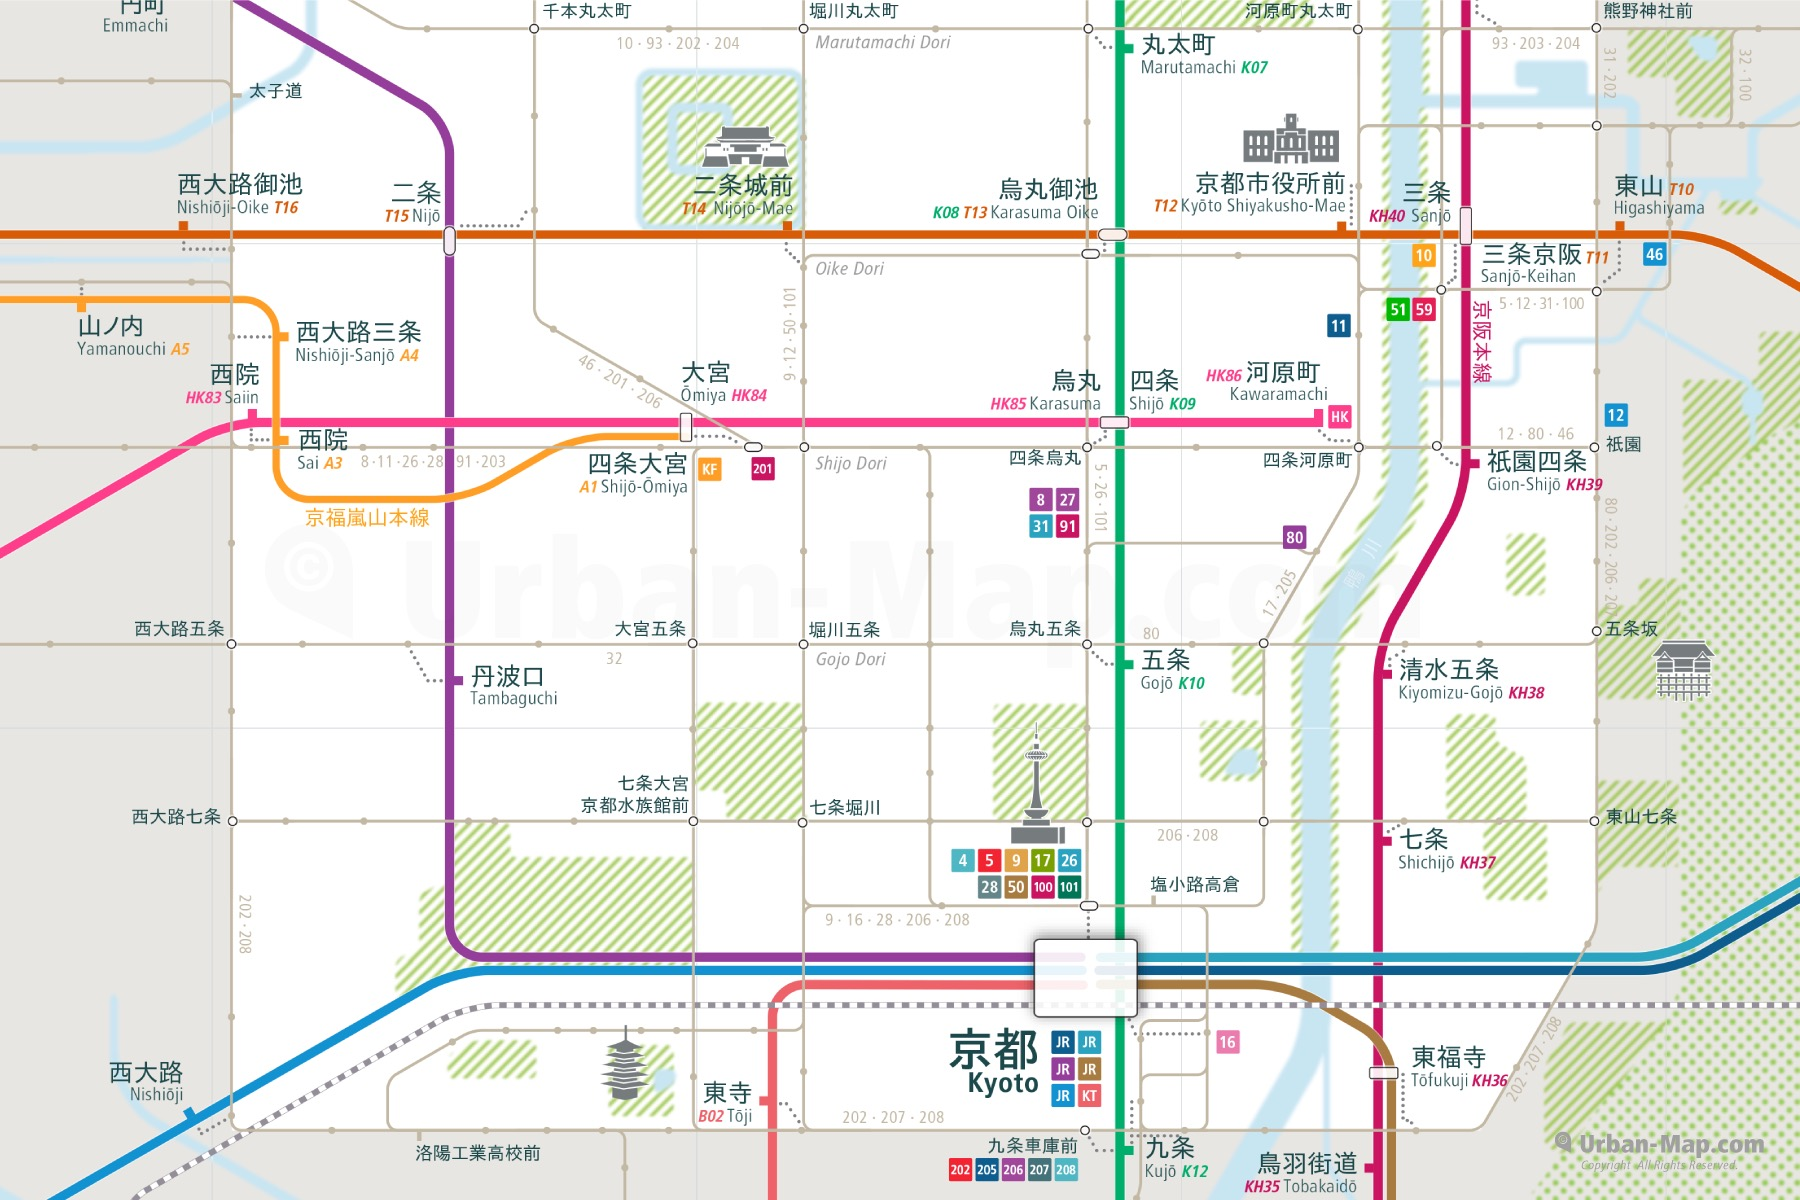 Kyoto Subway Map Vector.Kyoto Rail Map A Smart City Guide Map Even Offline